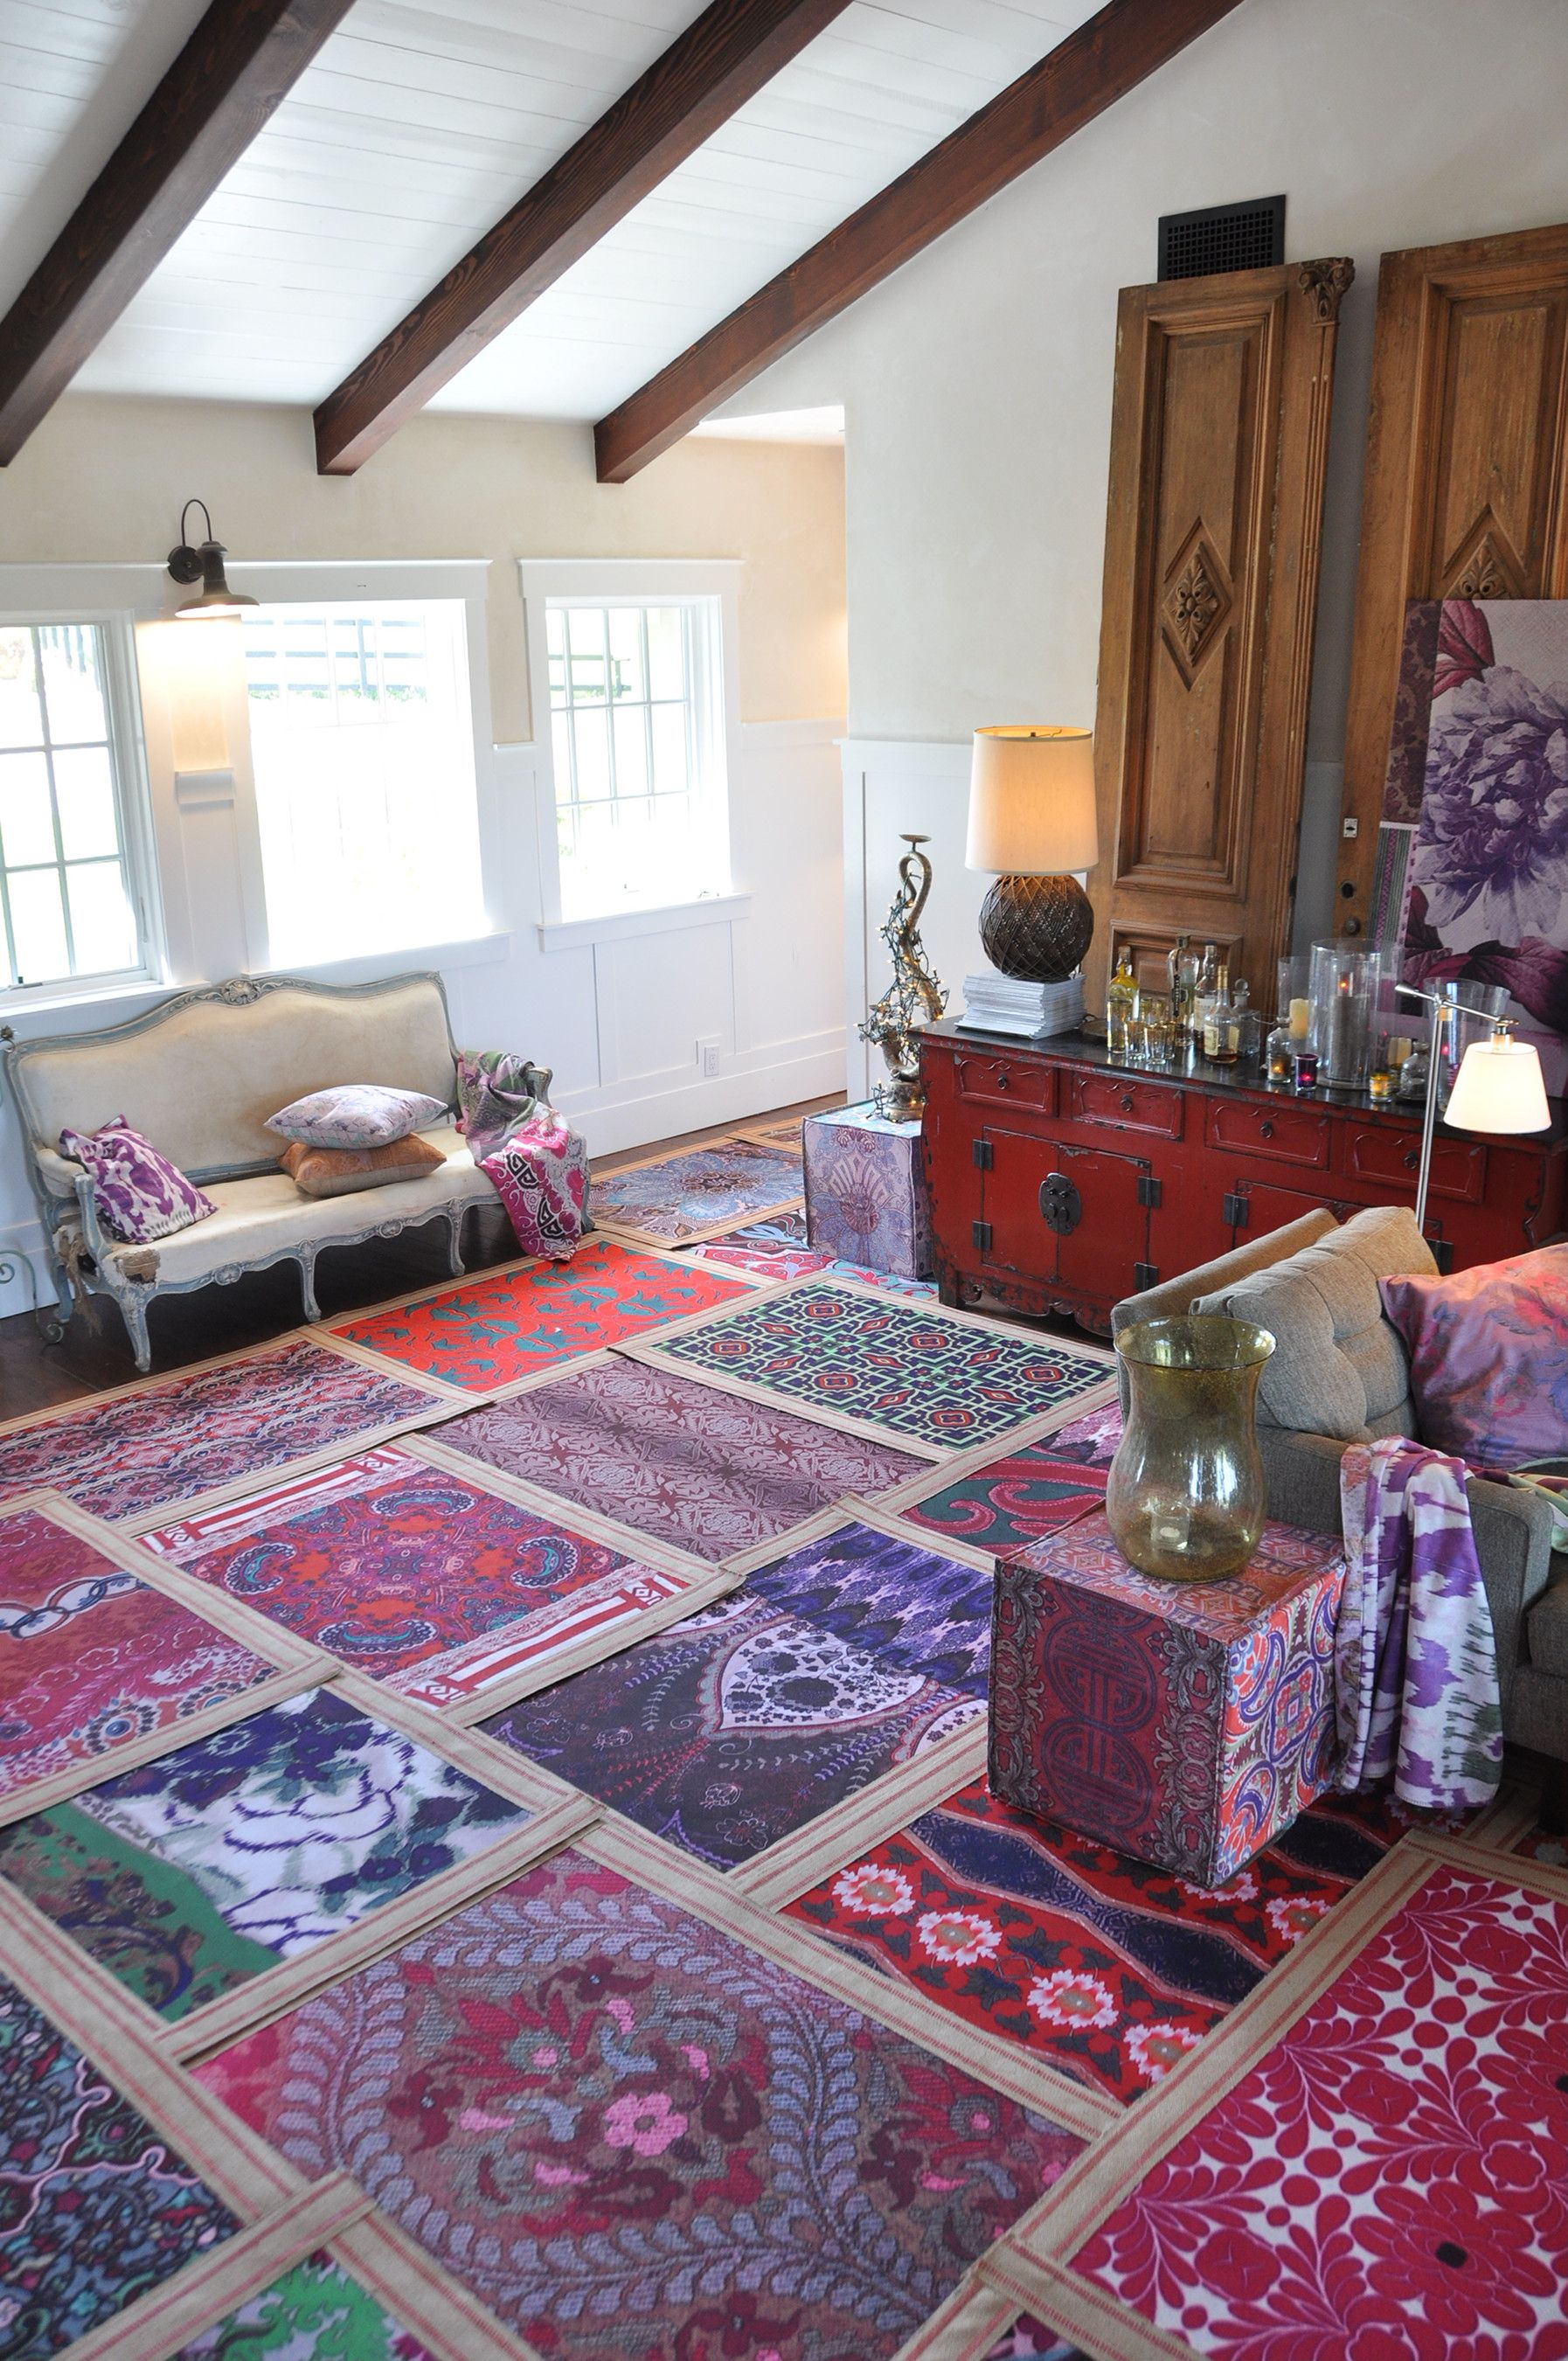 Use Multiple Small Area Rugs Instead Of One Large For Added Interest